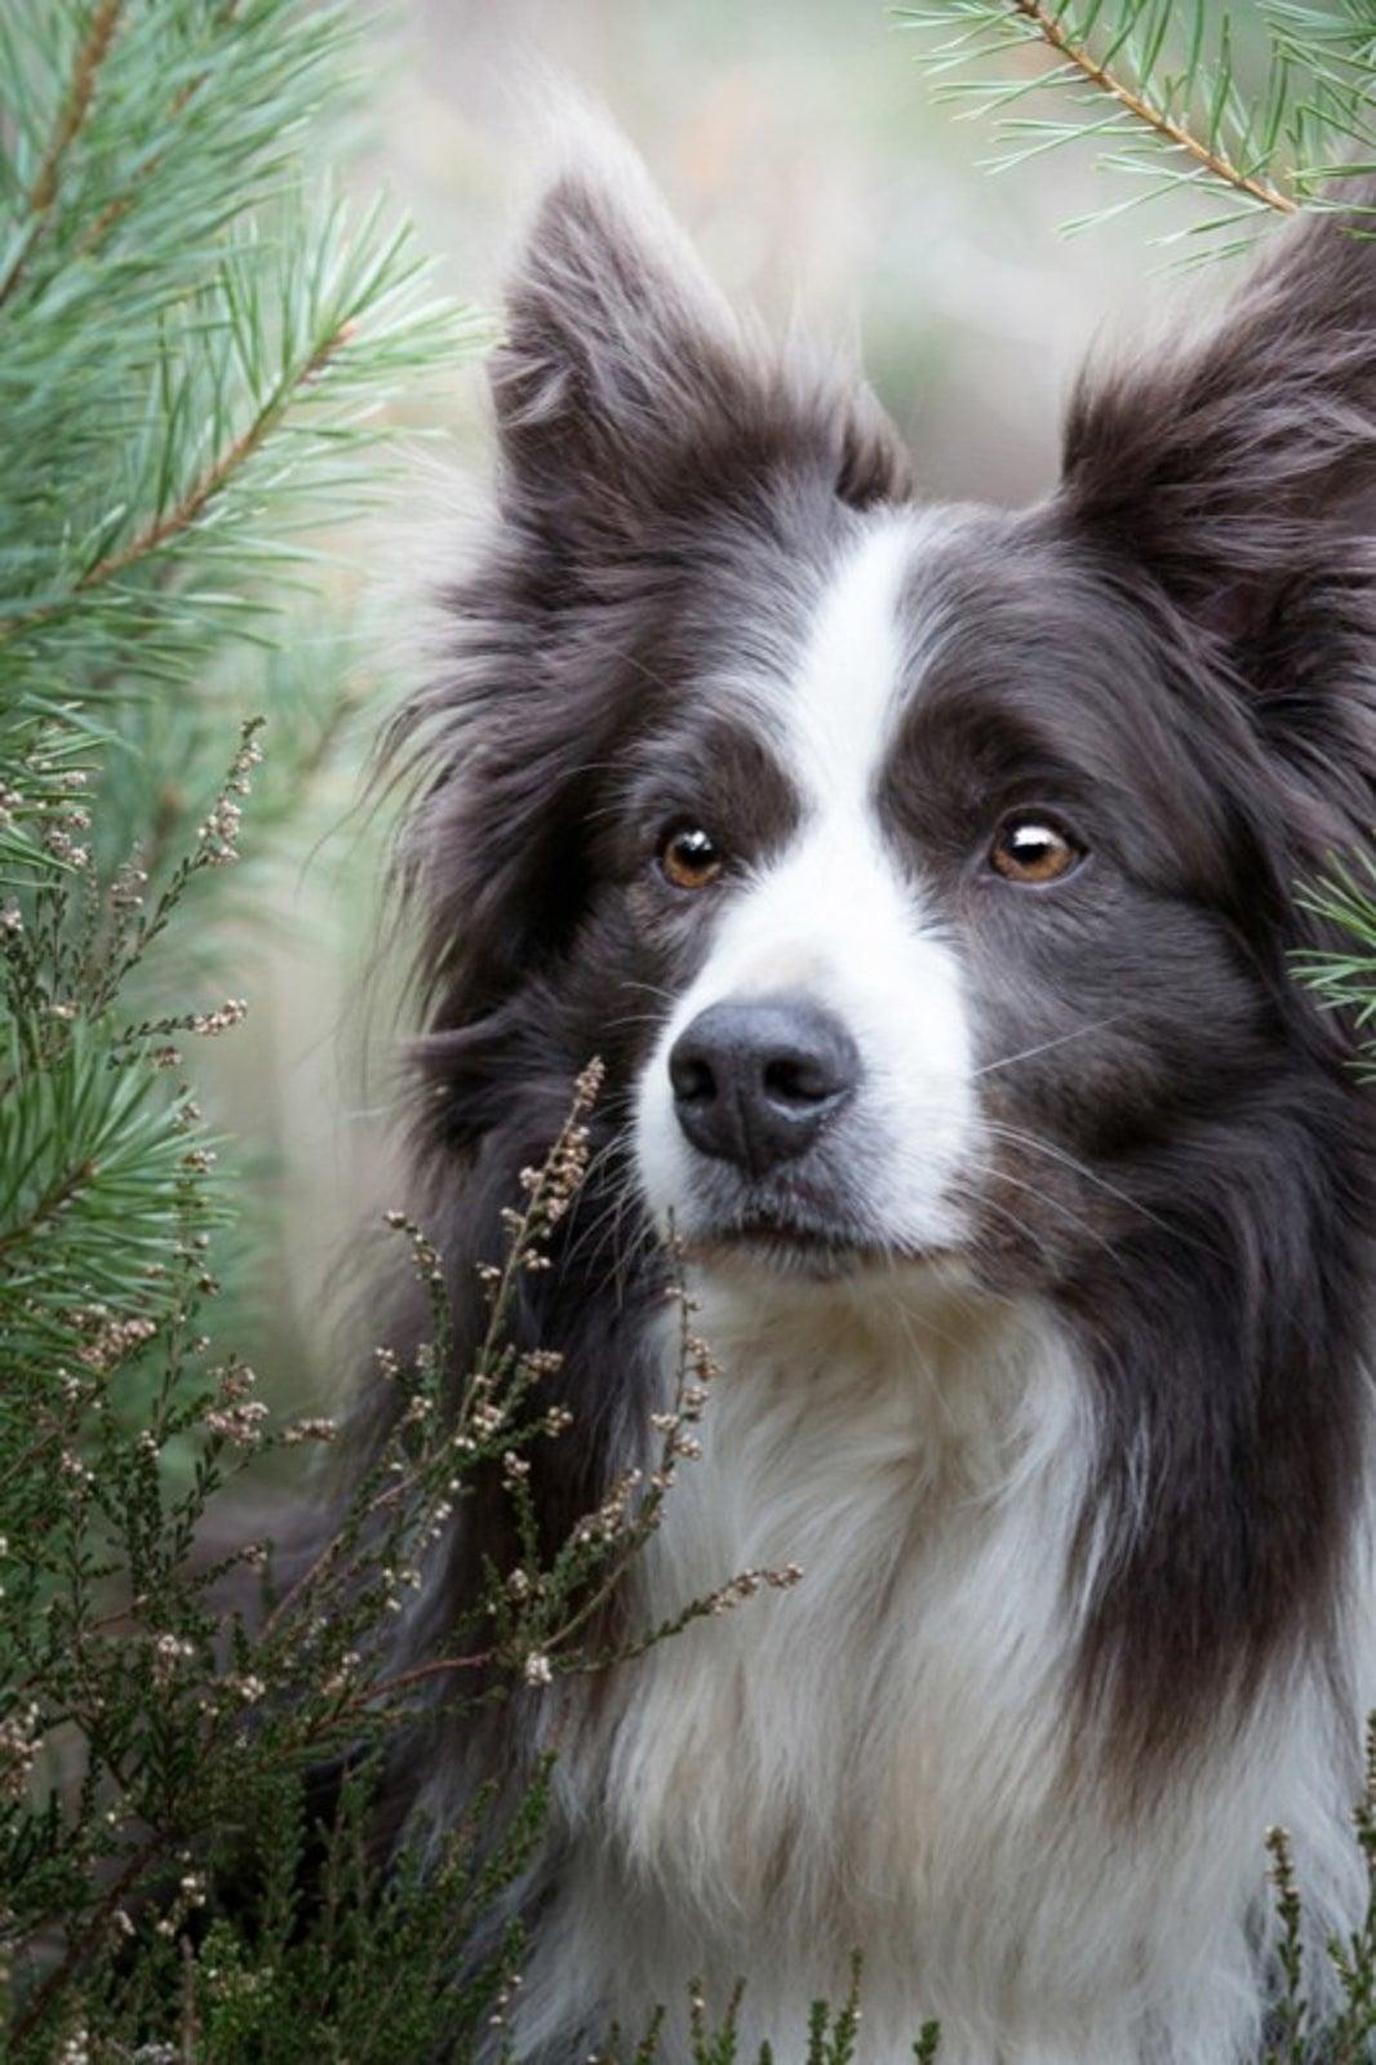 A Black and White Dog Poses for a Portrait During a Pet-Friendly Airbnb Experience In the UK.